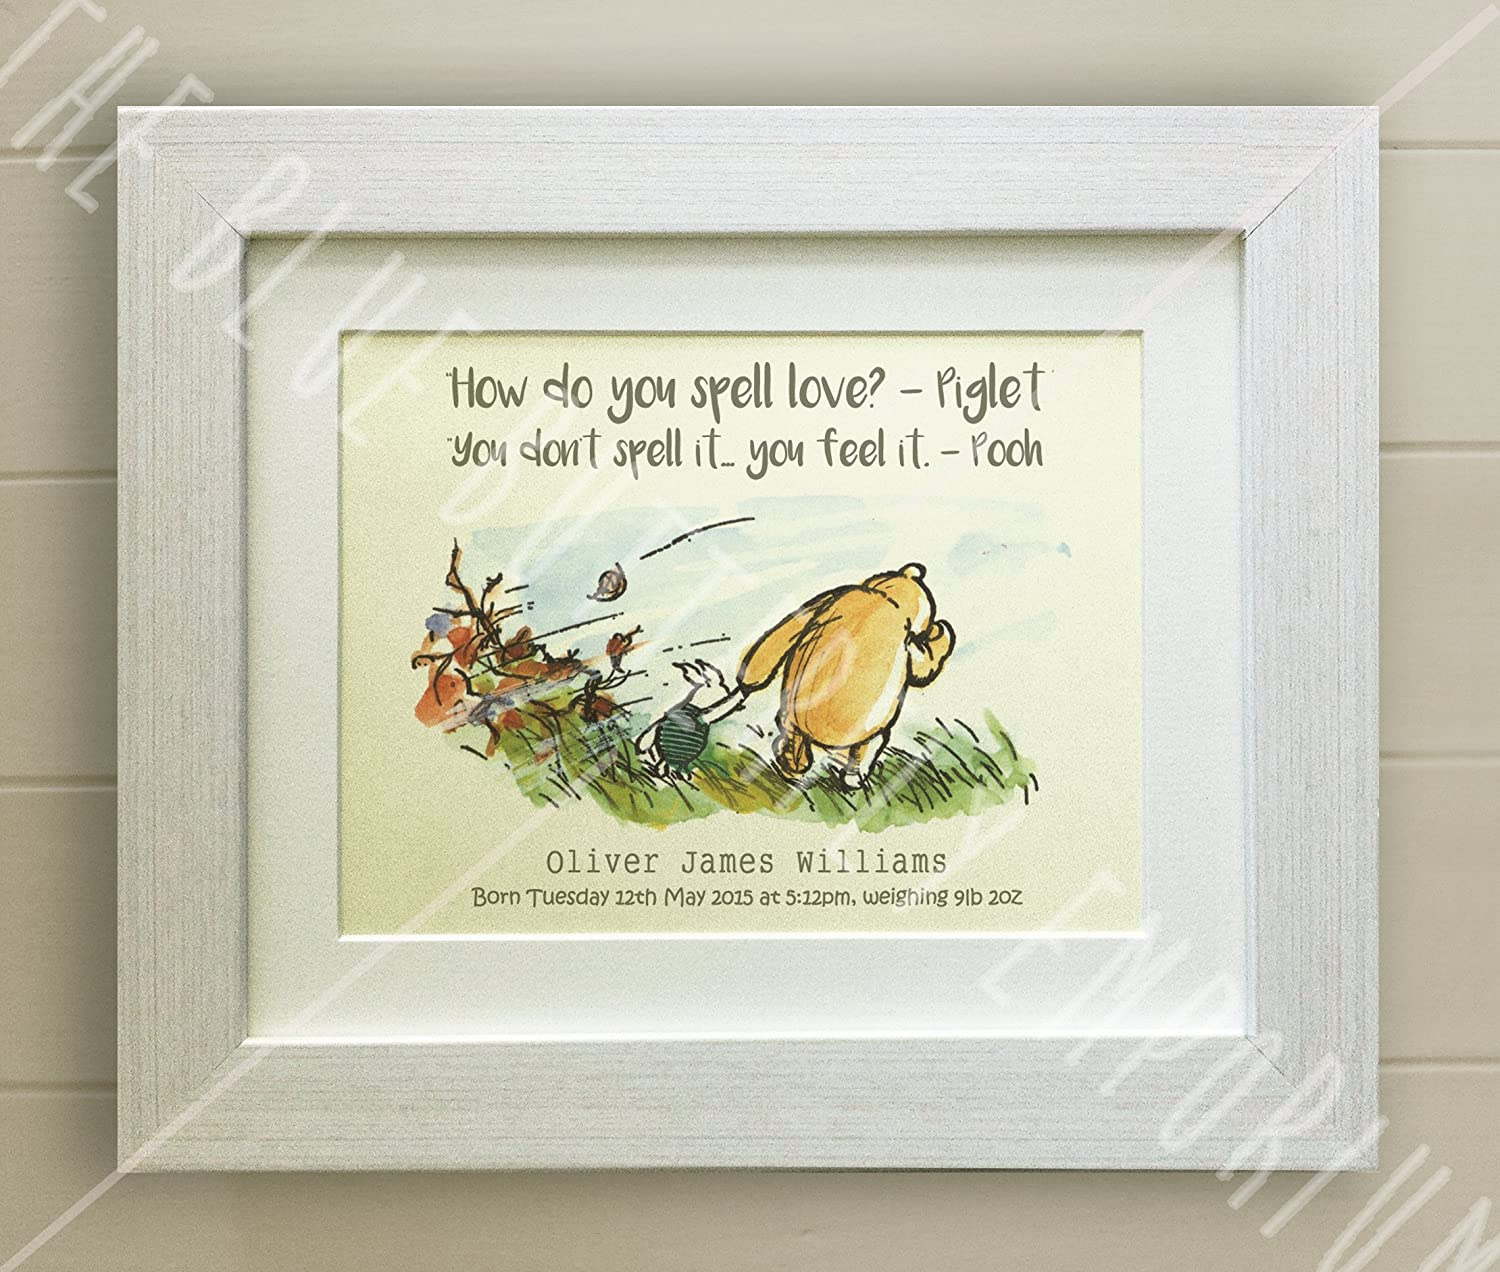 PERSONALISED WINNIE THE POOH FRAMED QUOTE PRINT, New Baby/Birth, Nursery Picture Gift, Pooh Bear, Piglet, How do you spell love? (White Frame) The Blue Butterfly Emporium